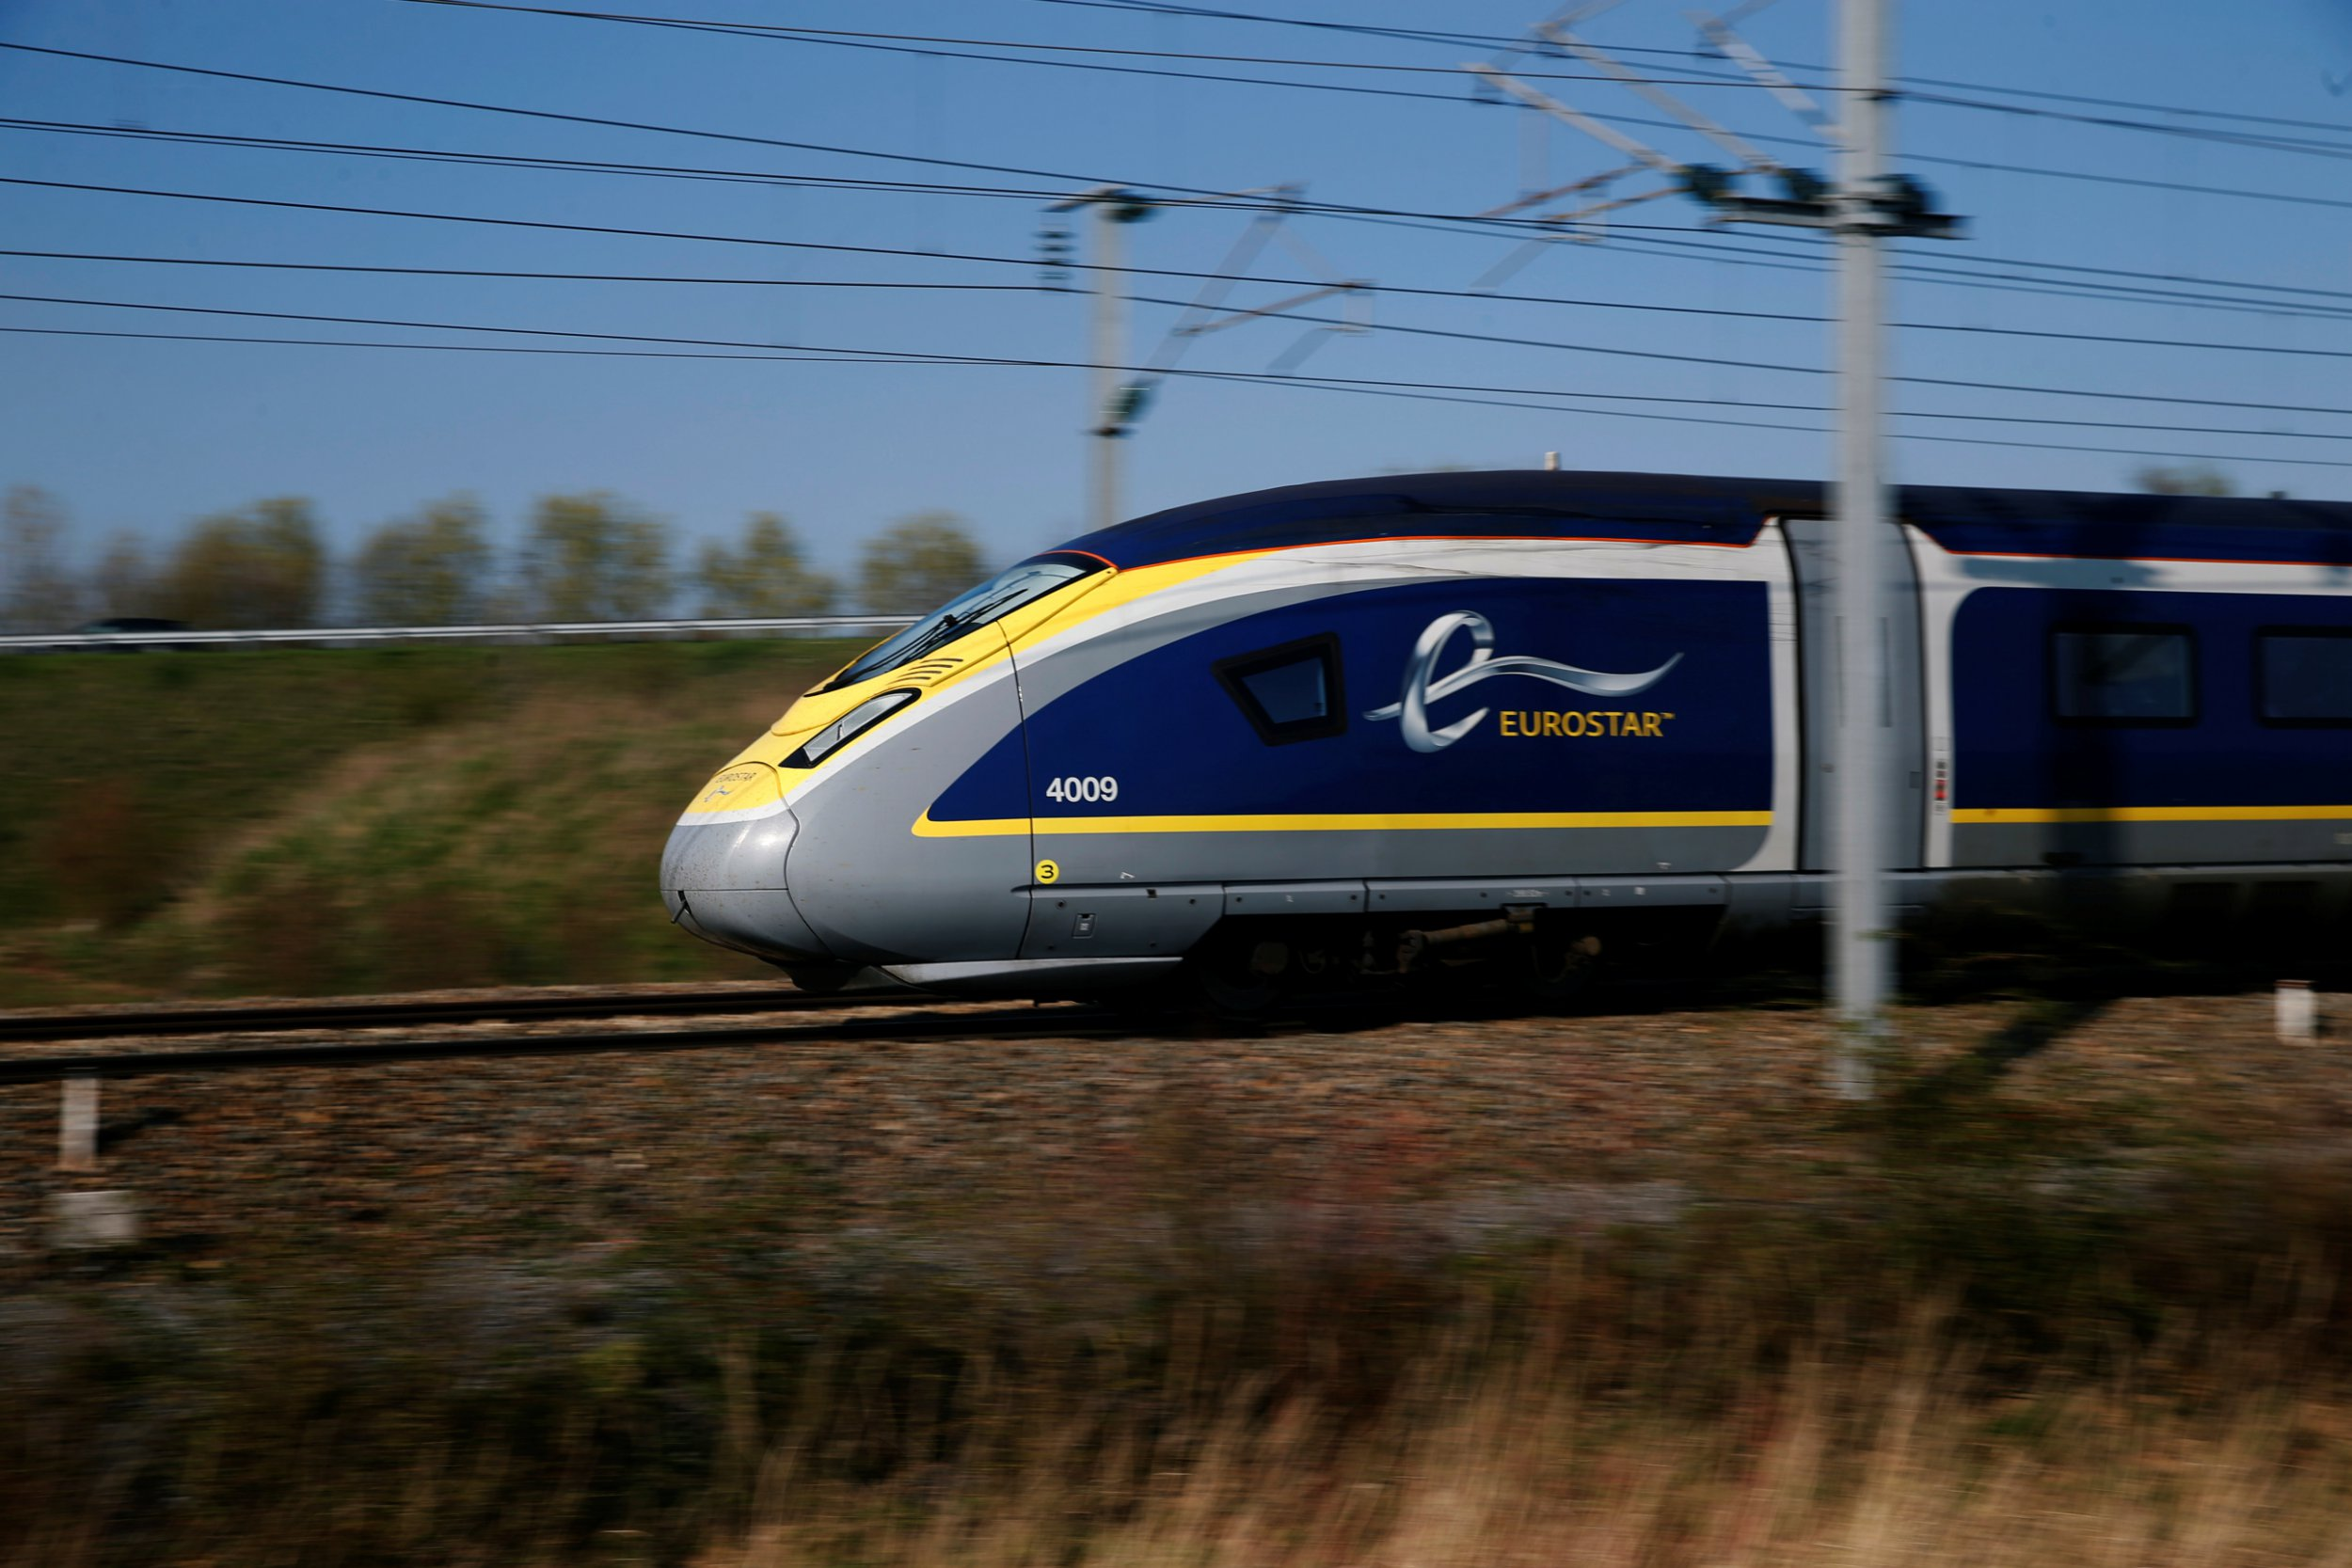 An Eurostar high-speed train speeds on the LGV Nord railtrack outside Seclin, France, March 29, 2019. REUTERS/Pascal Rossignol